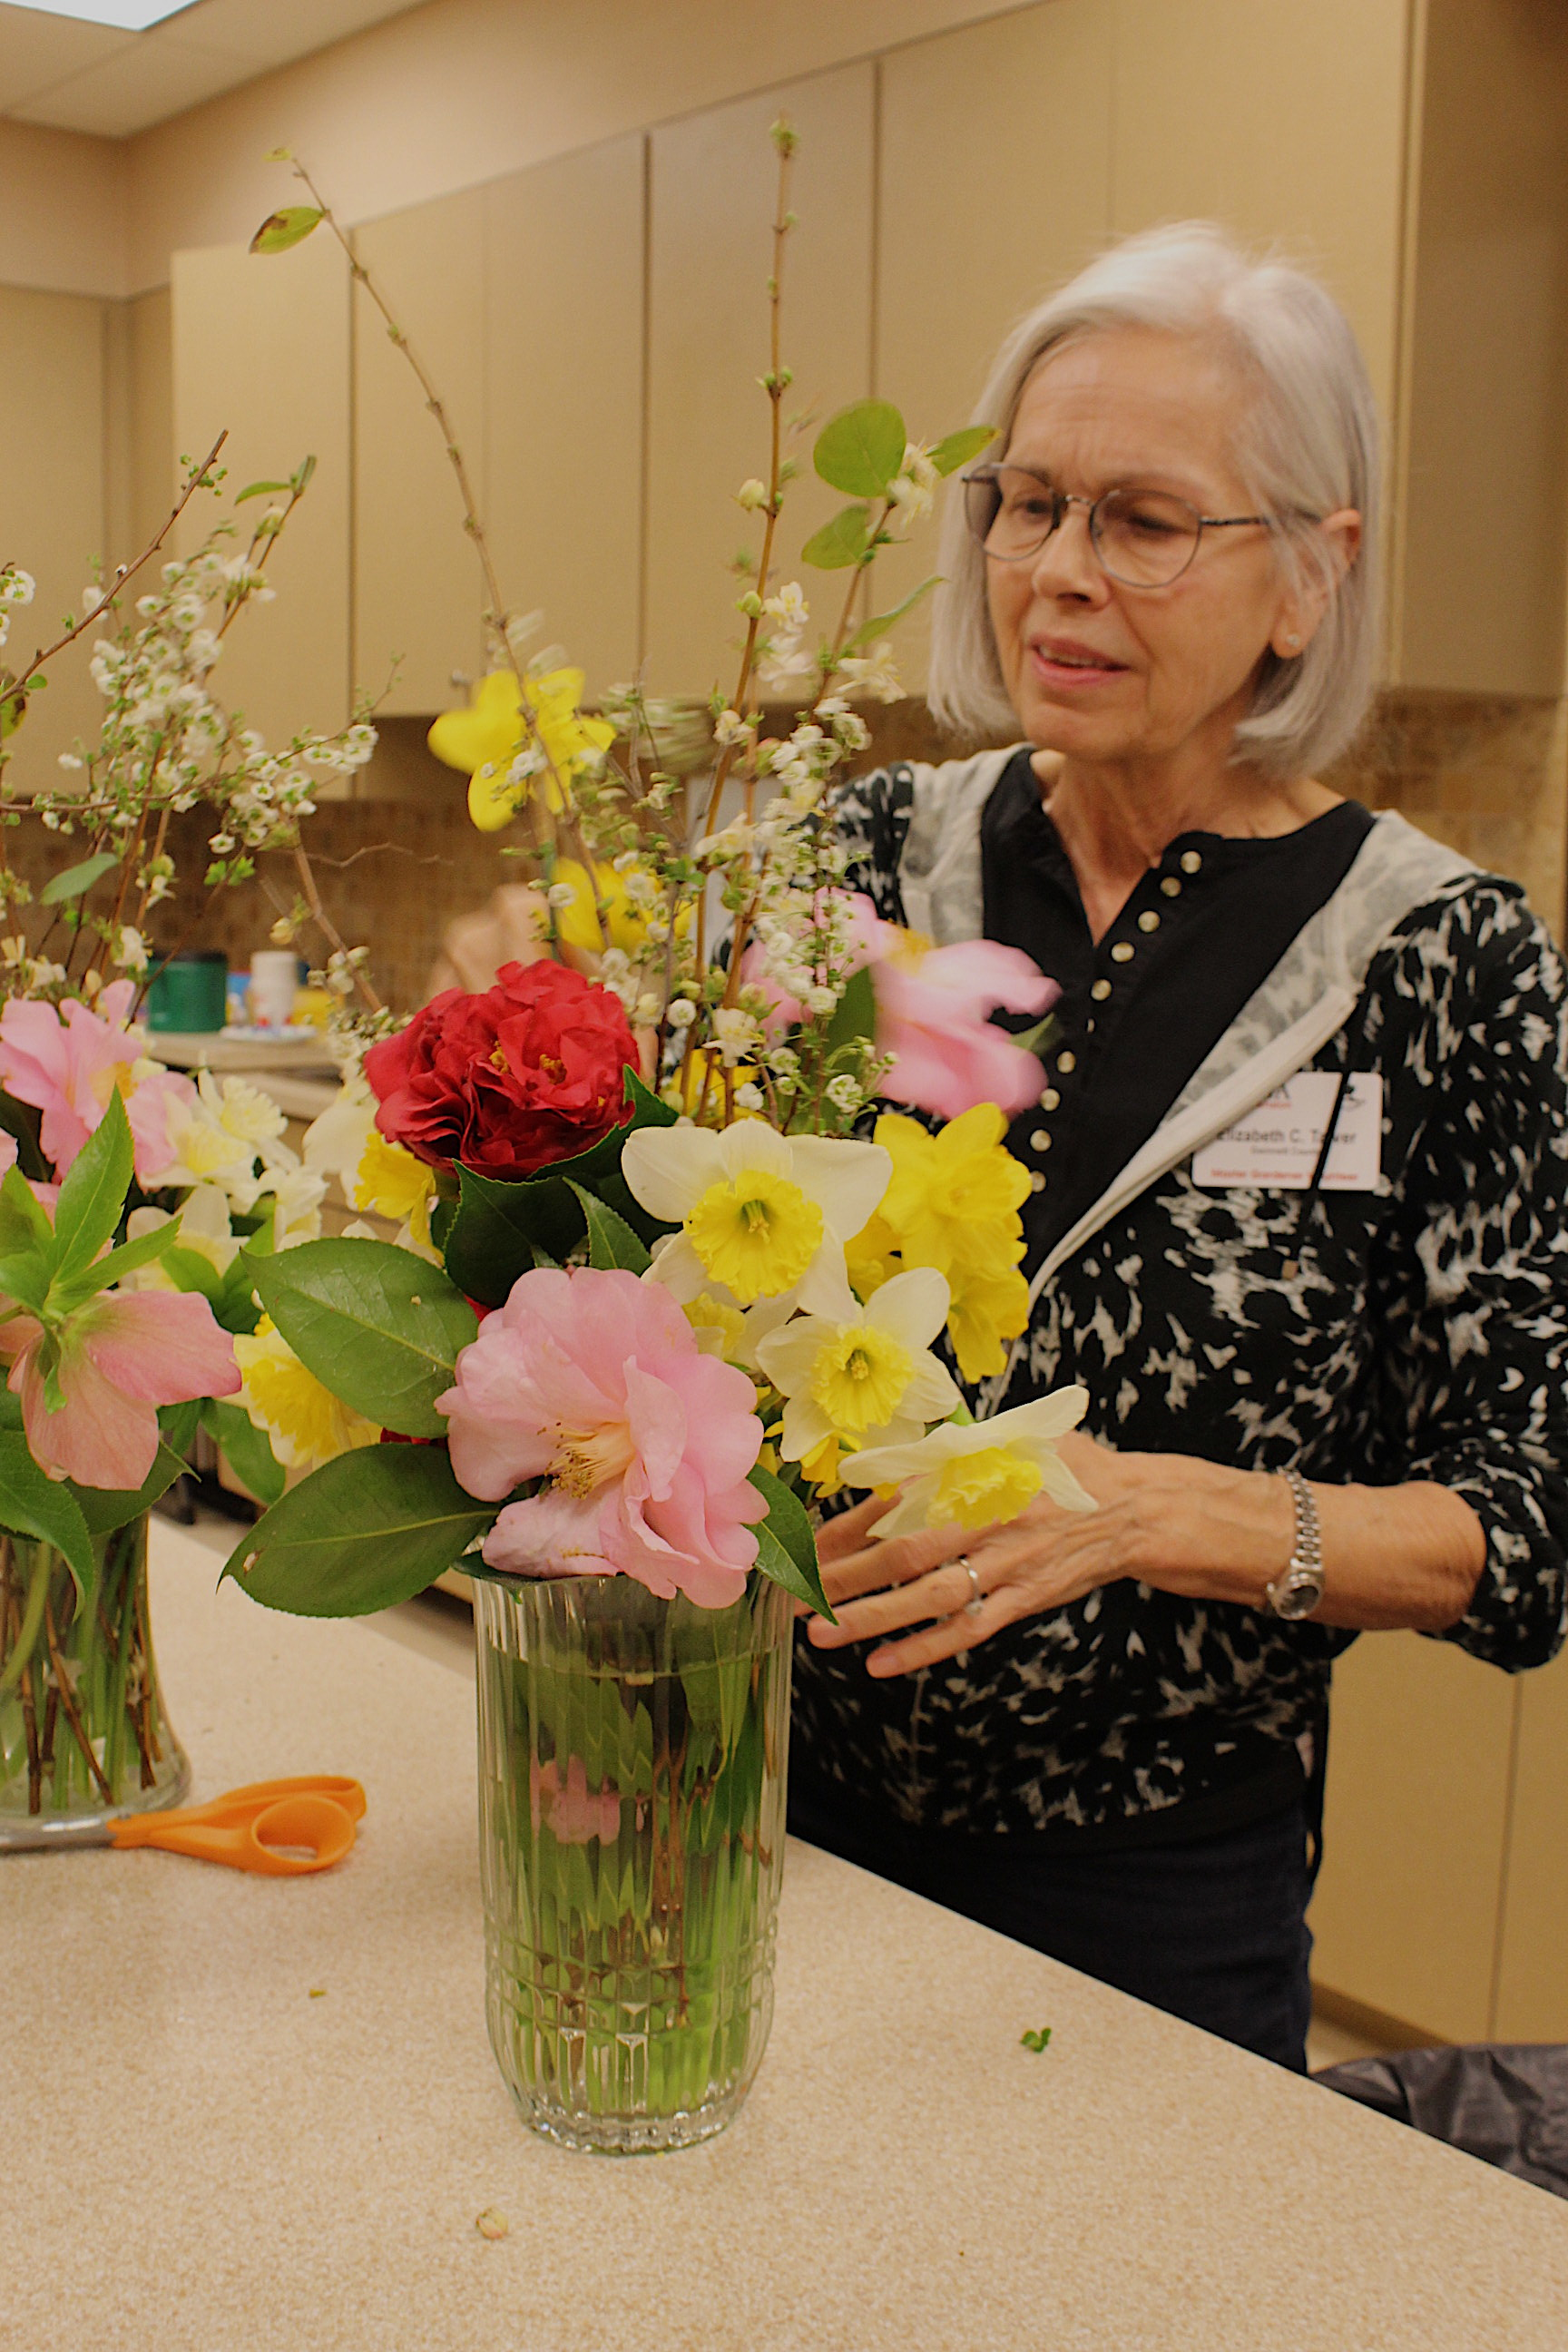 Our talented floral artist at work to grace our tables with beauty and fragrance